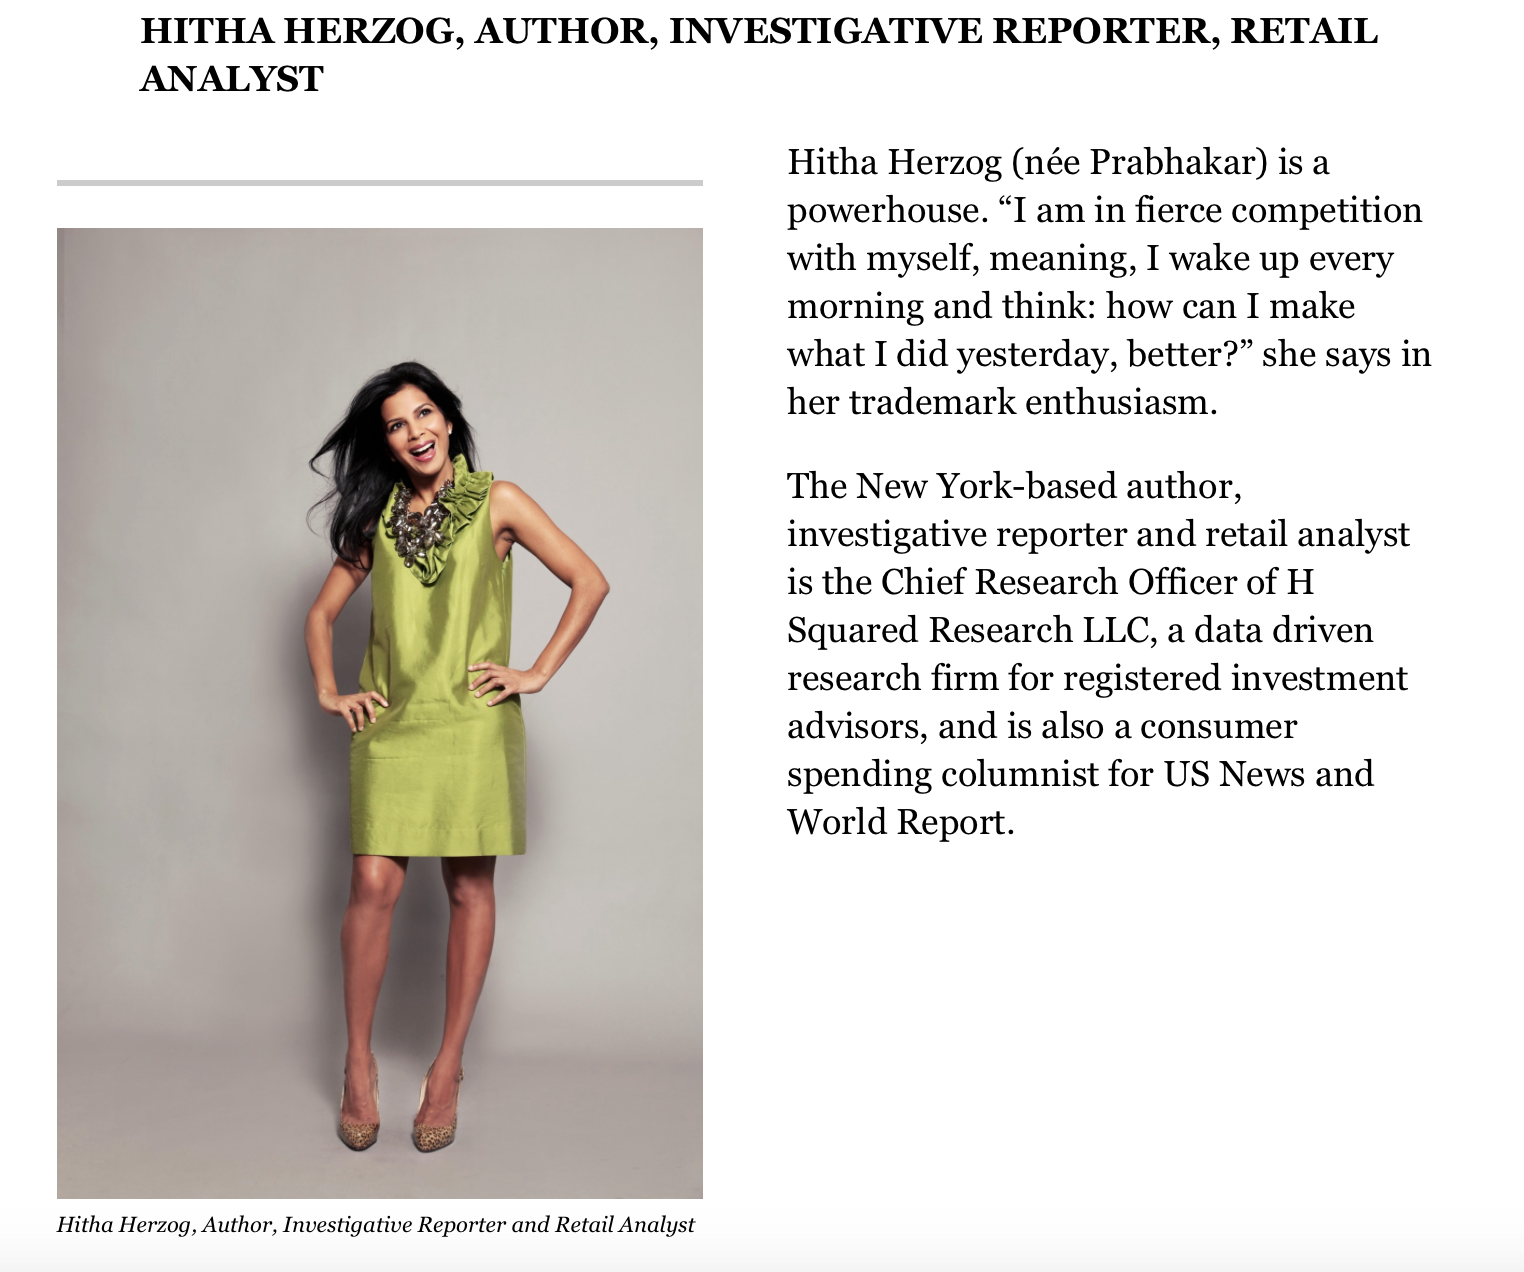 "Ten years ago I worked at Forbes as a style writer. Now, the magazine has listed me as top executive you need to know. To say I am honored and humbled is an understatement. #Winning   (Copy reads: Hitha Herzog (neé Prabhakar) is a powerhouse. ""I am in fierce competition with myself, meaning, I wake up every morning and think: how can I make what I did yesterday, better?"" she says in her trademark enthusiasm. The New York-based author, investigative reporter and retail analyst is the Chief Research Officer of H Squared Research LLC, a data driven research firm for registered investment advisors, and is also a consumer spending columnist for US News and World Report.)"